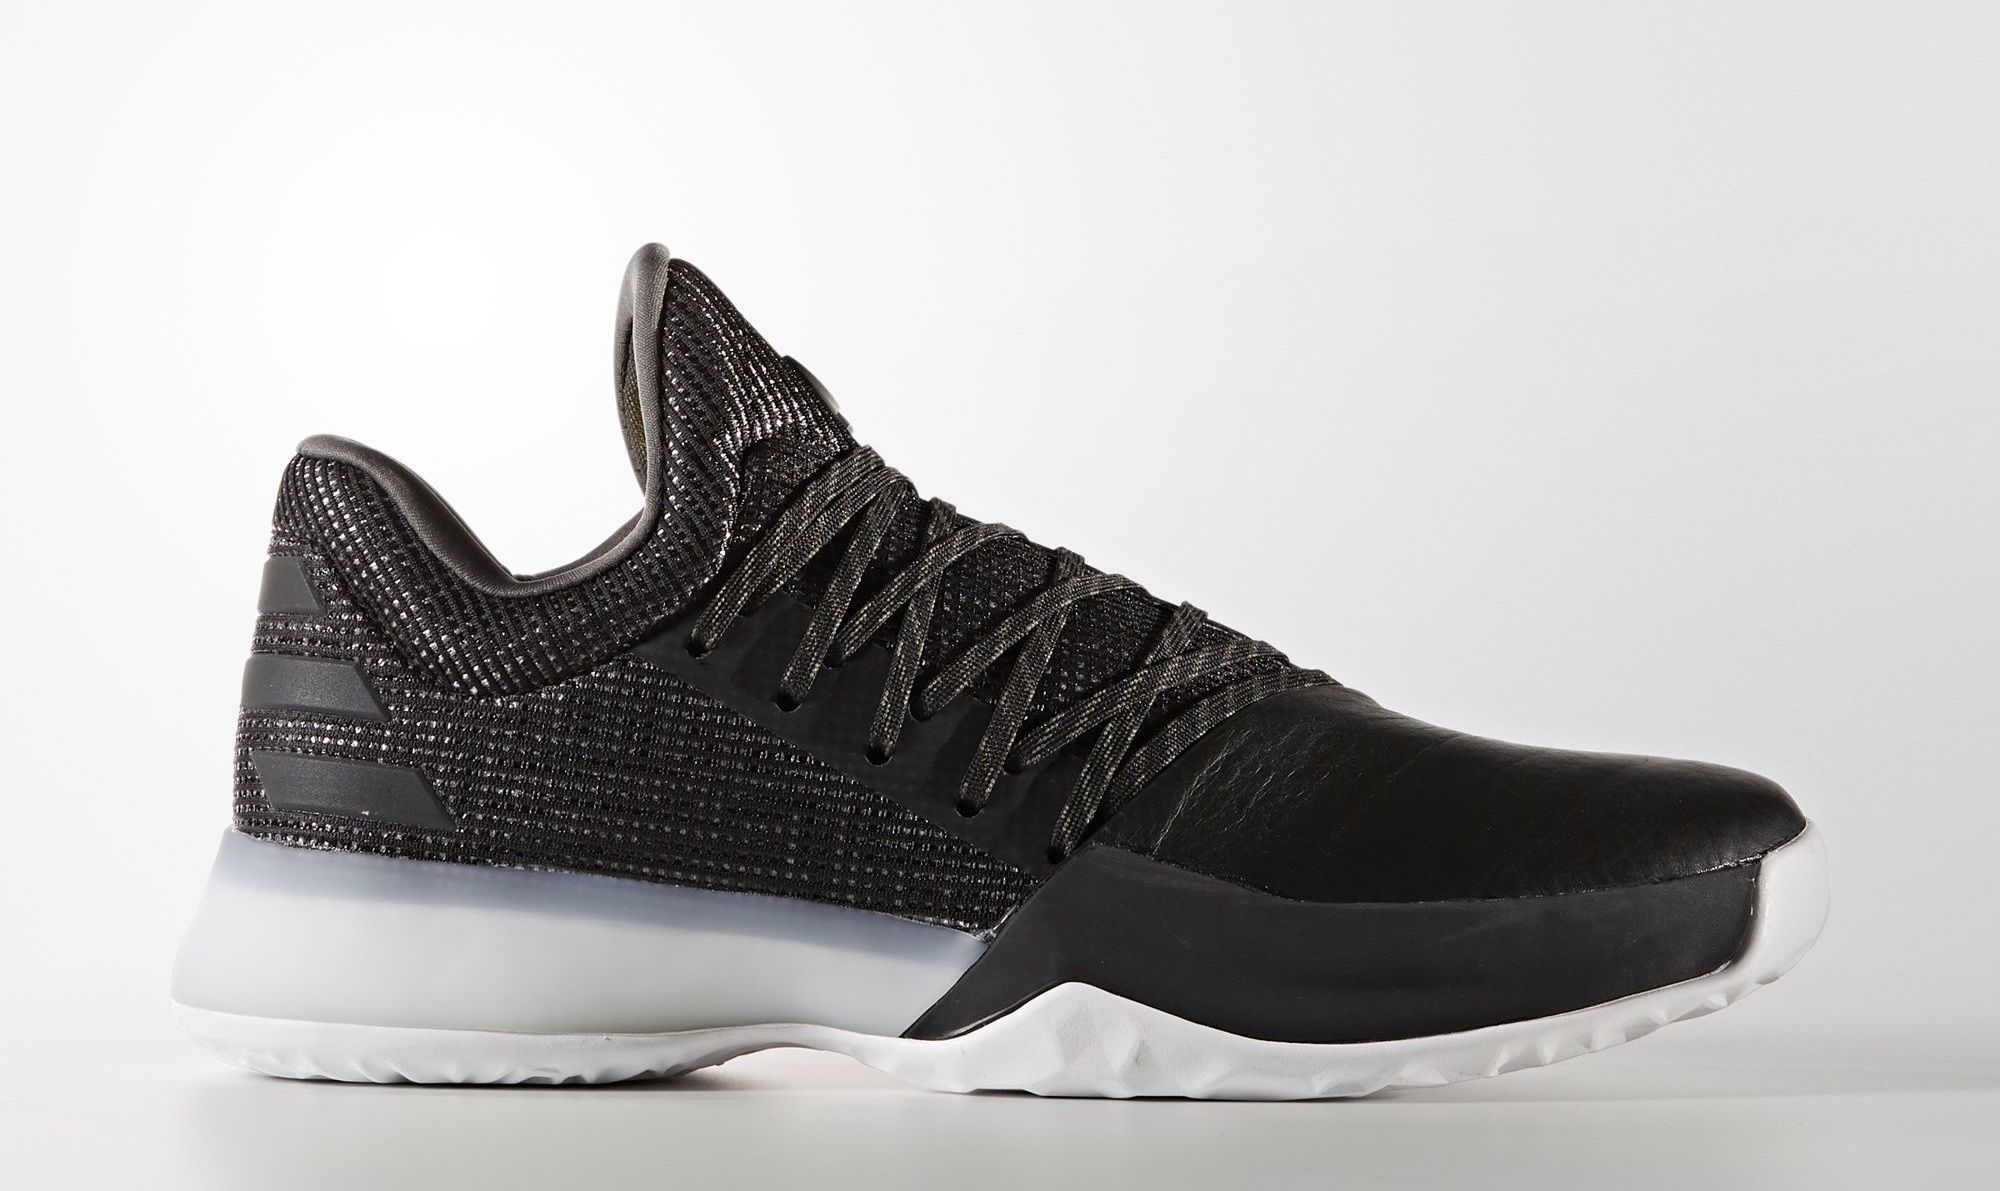 James Harden Vol 1 Primeknit 2vGLSlzb9D